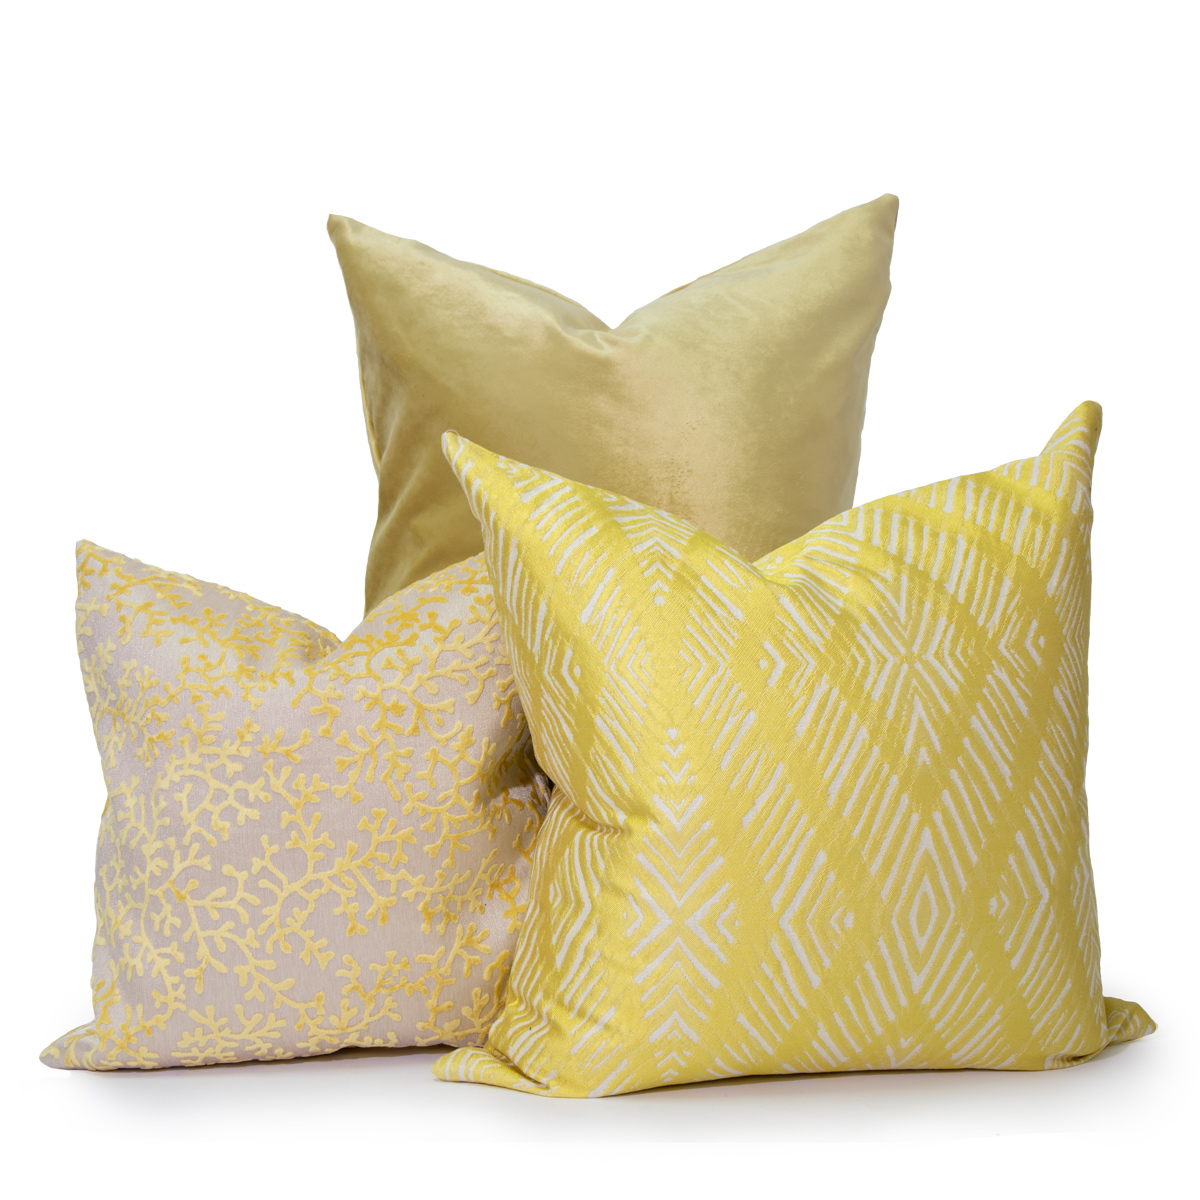 Mixed with Alendel pillows (4)